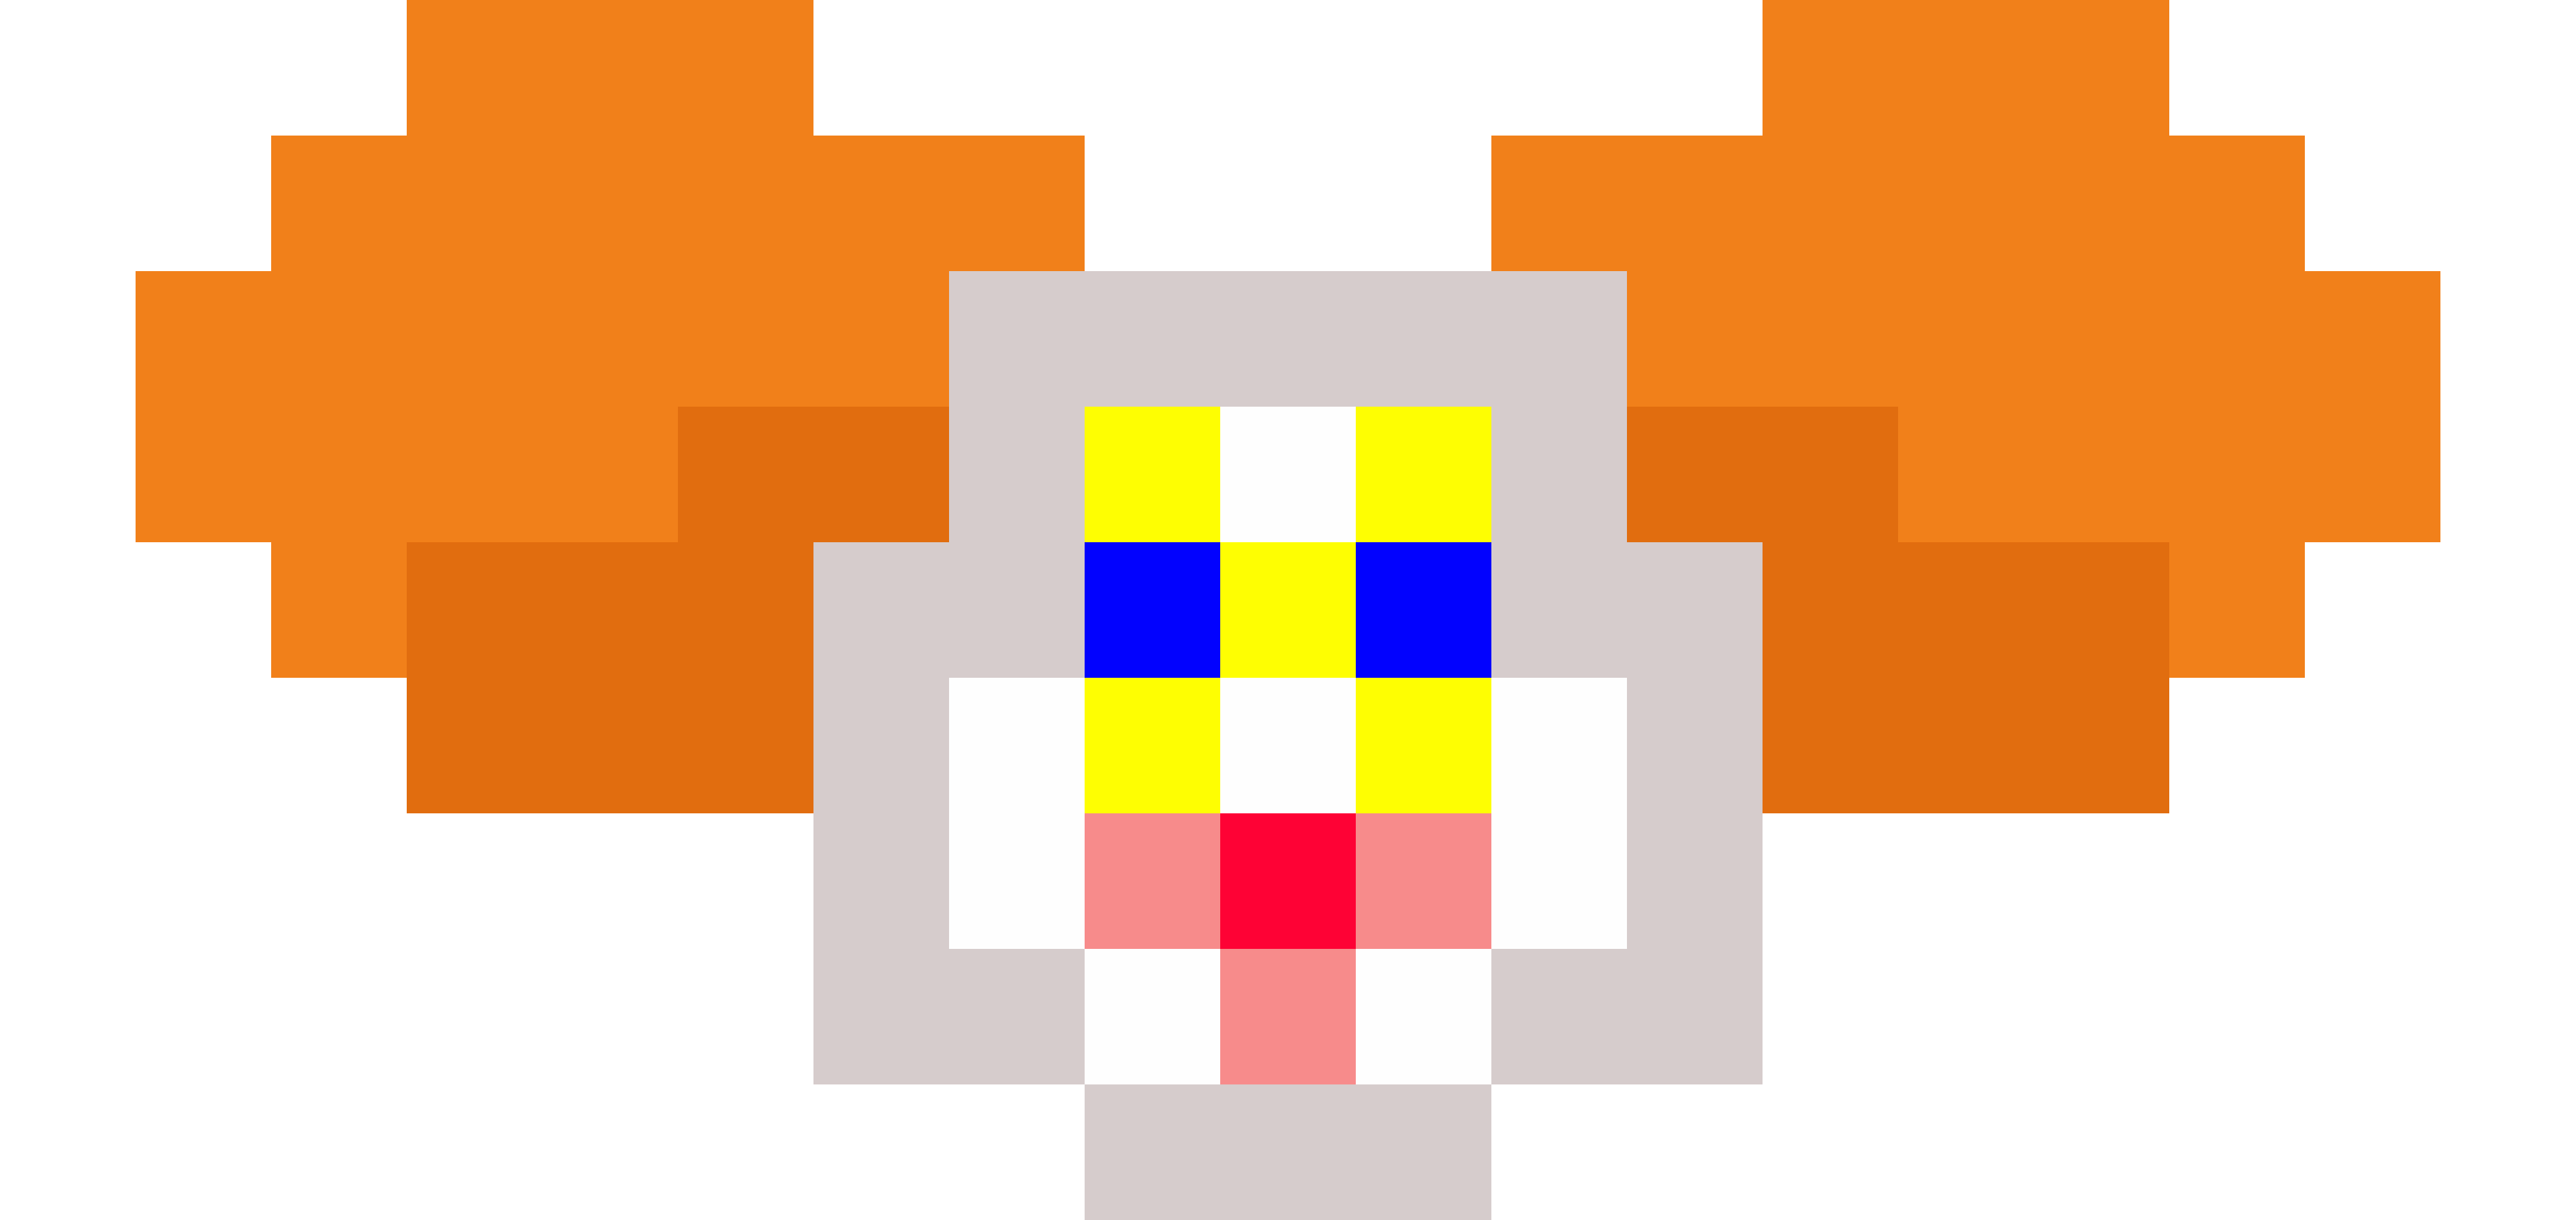 Space station 13 clown png. Tg traditional games thread